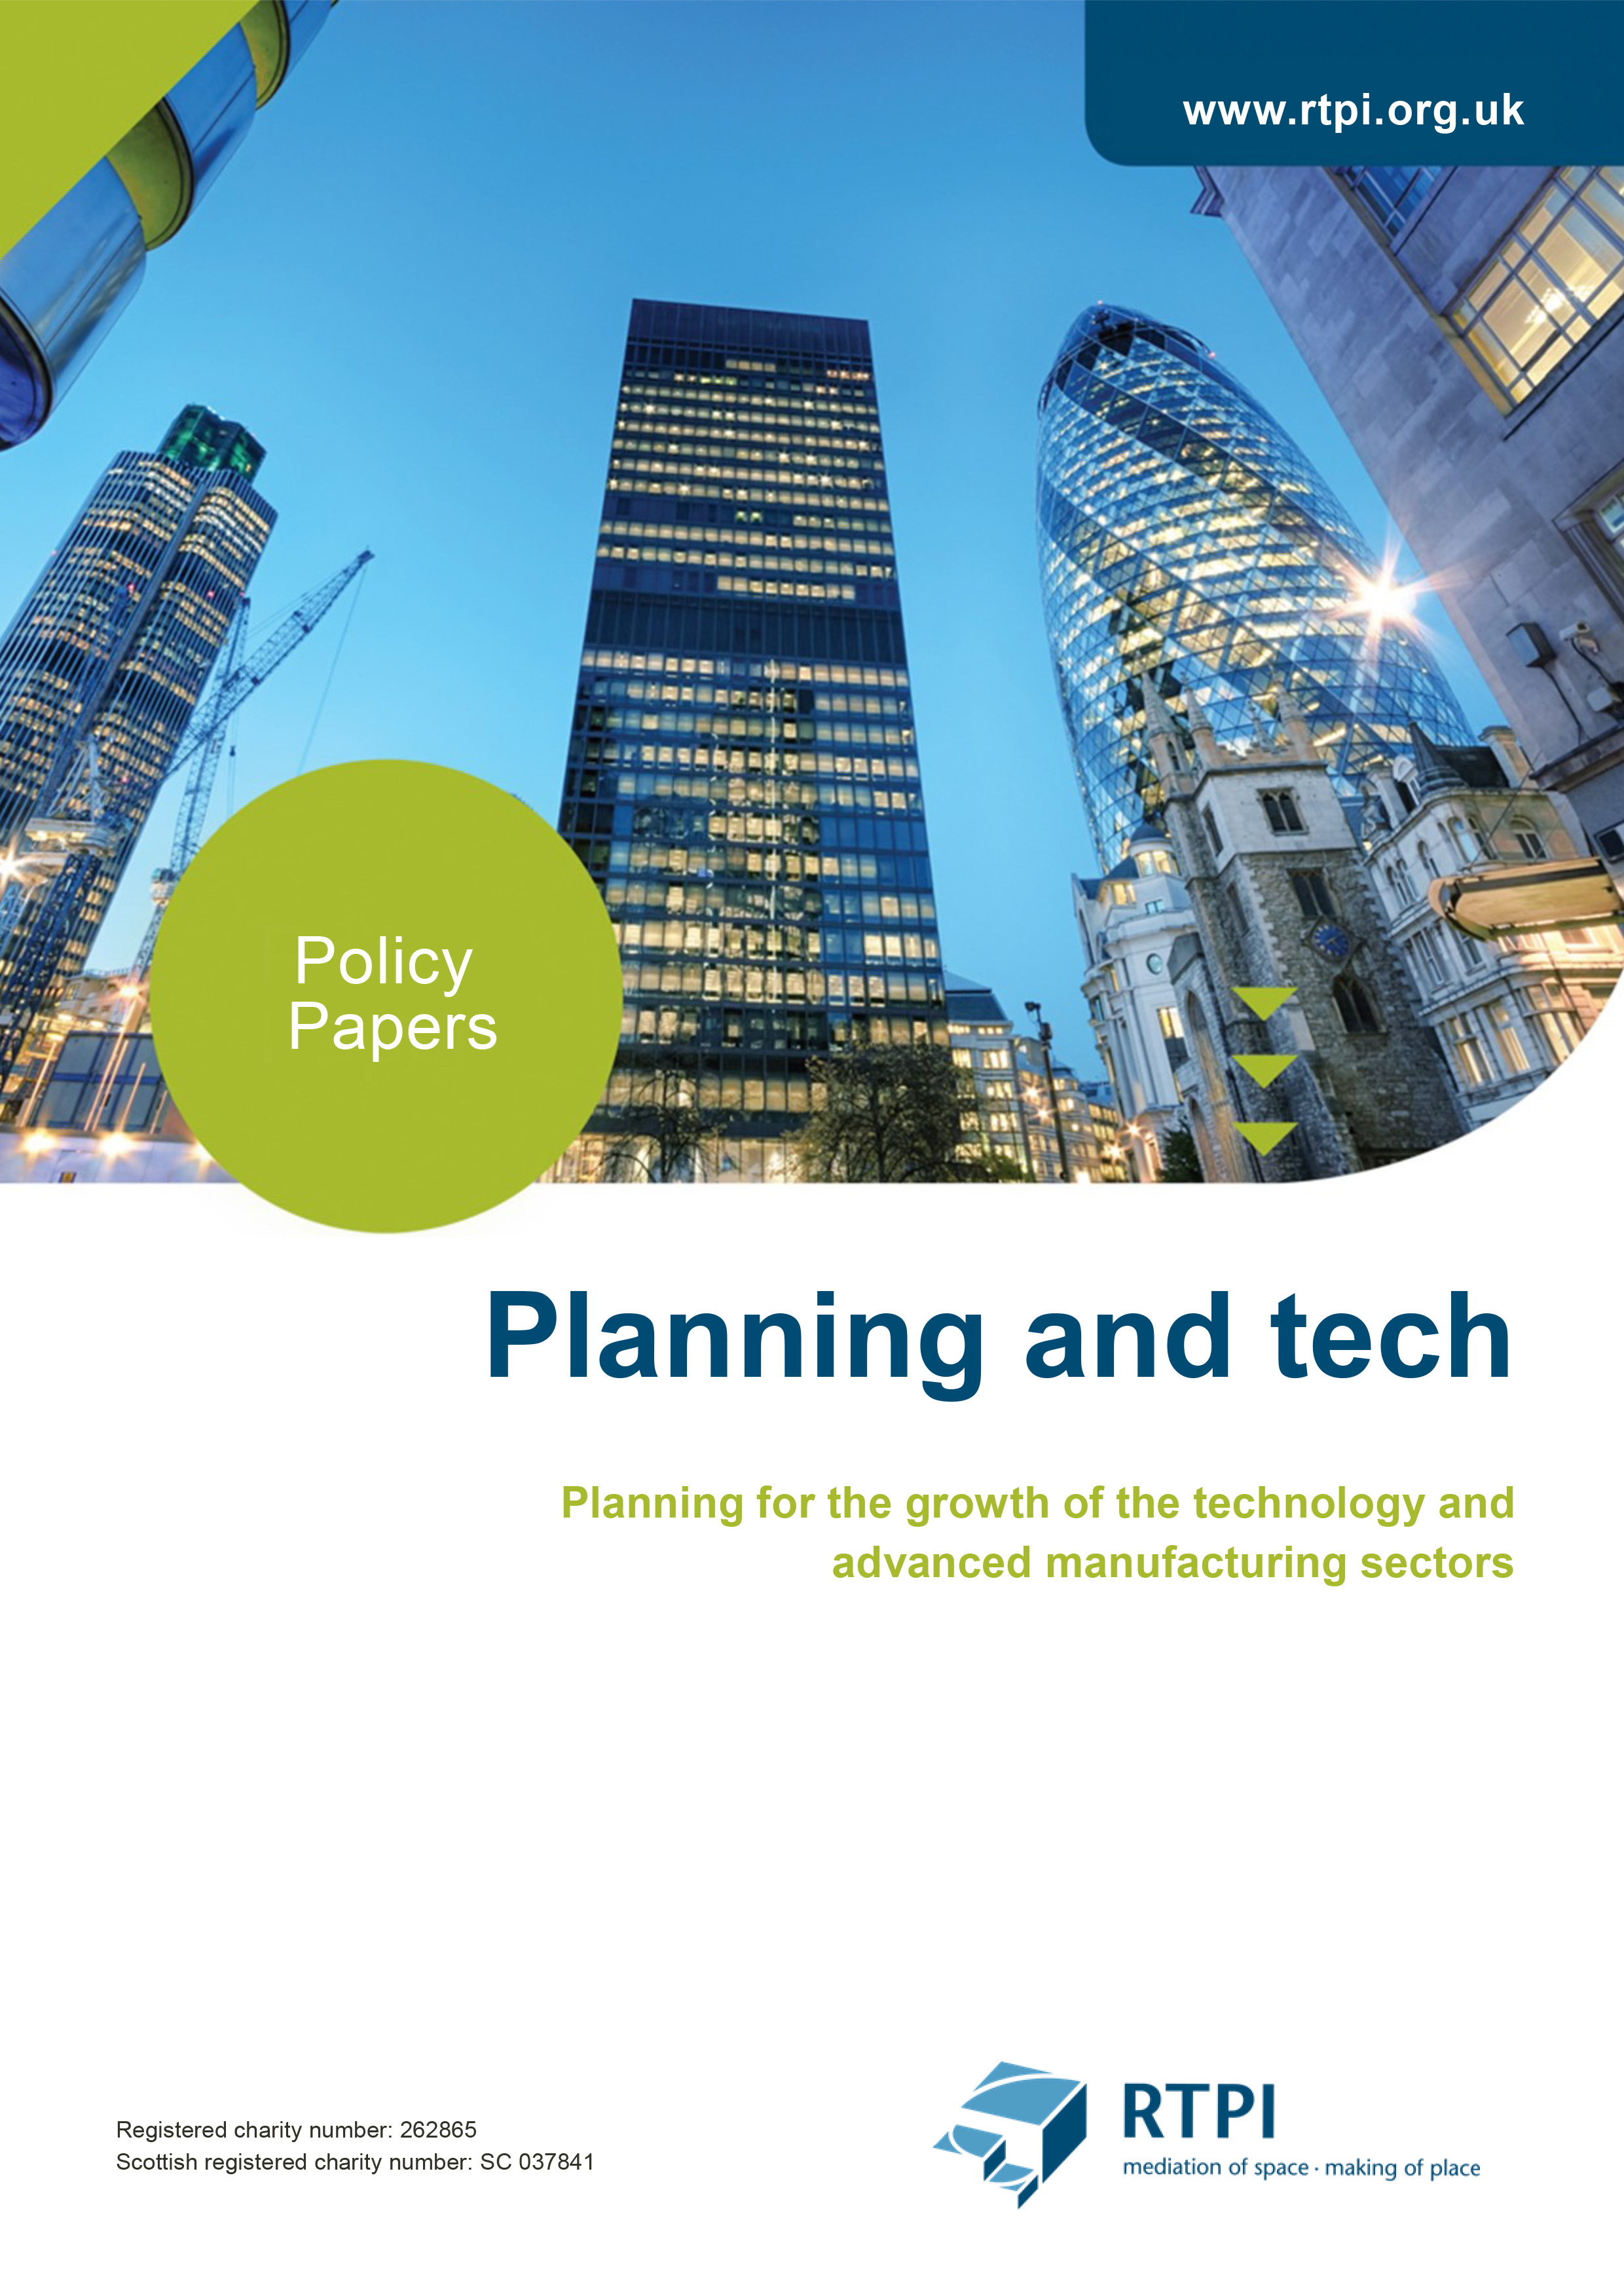 Policy Paper: Planning for the growth of the technology and advanced manufacturing sectors